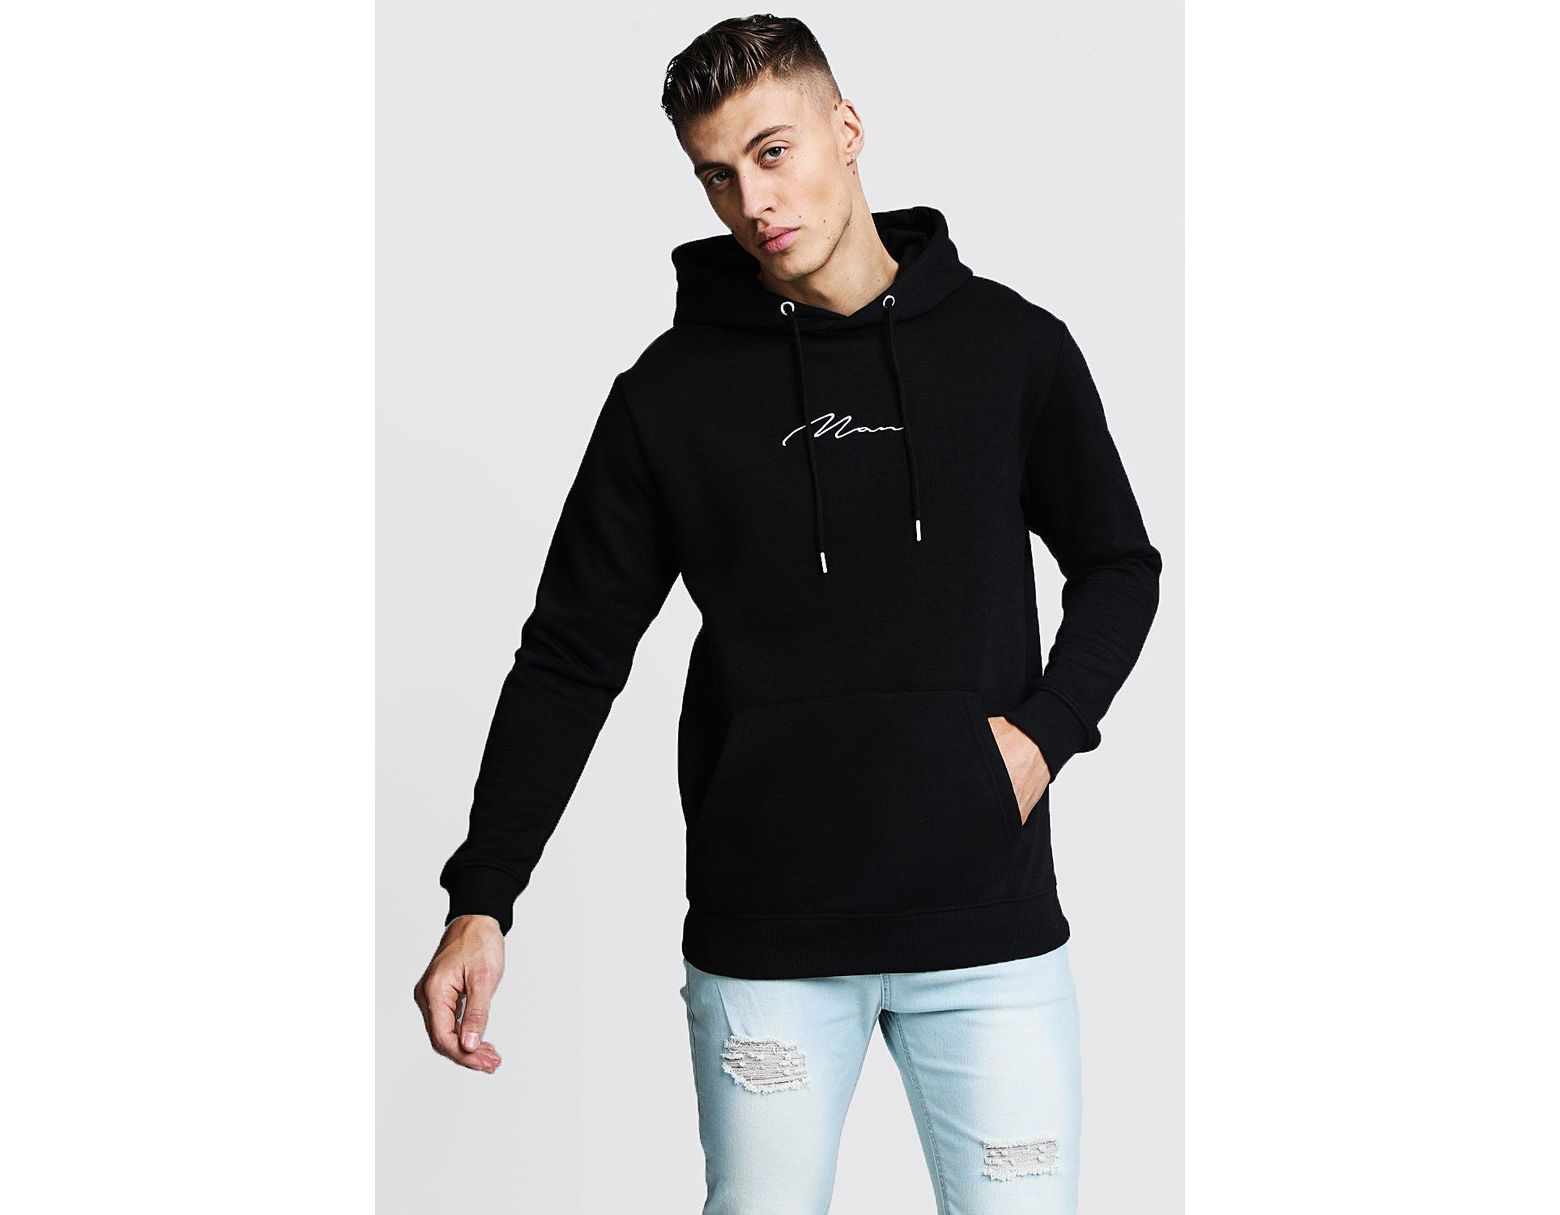 c1efa05363 BoohooMAN Oversized Man Signature Hoodie in Black for Men - Save 72% - Lyst